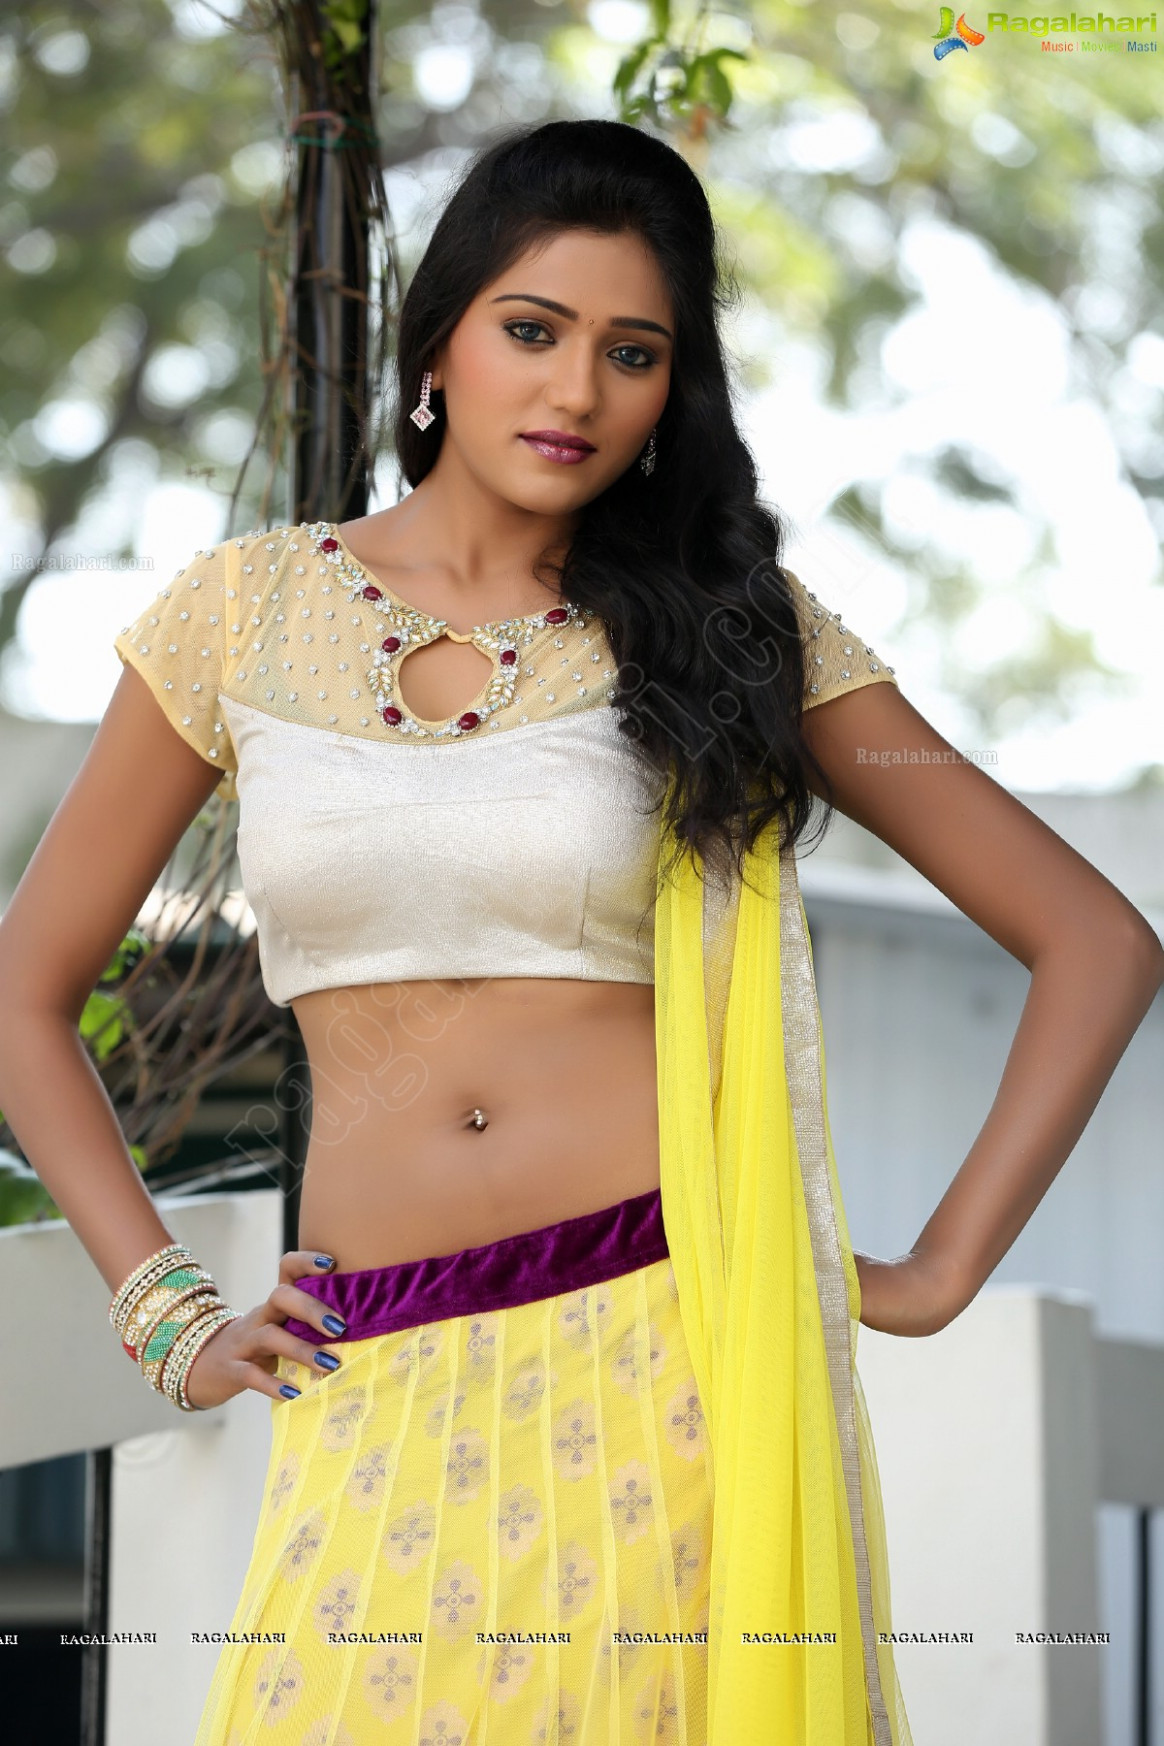 Shalu Chourasiya (Exclusive) Image 1 | Tollywood Actress ...